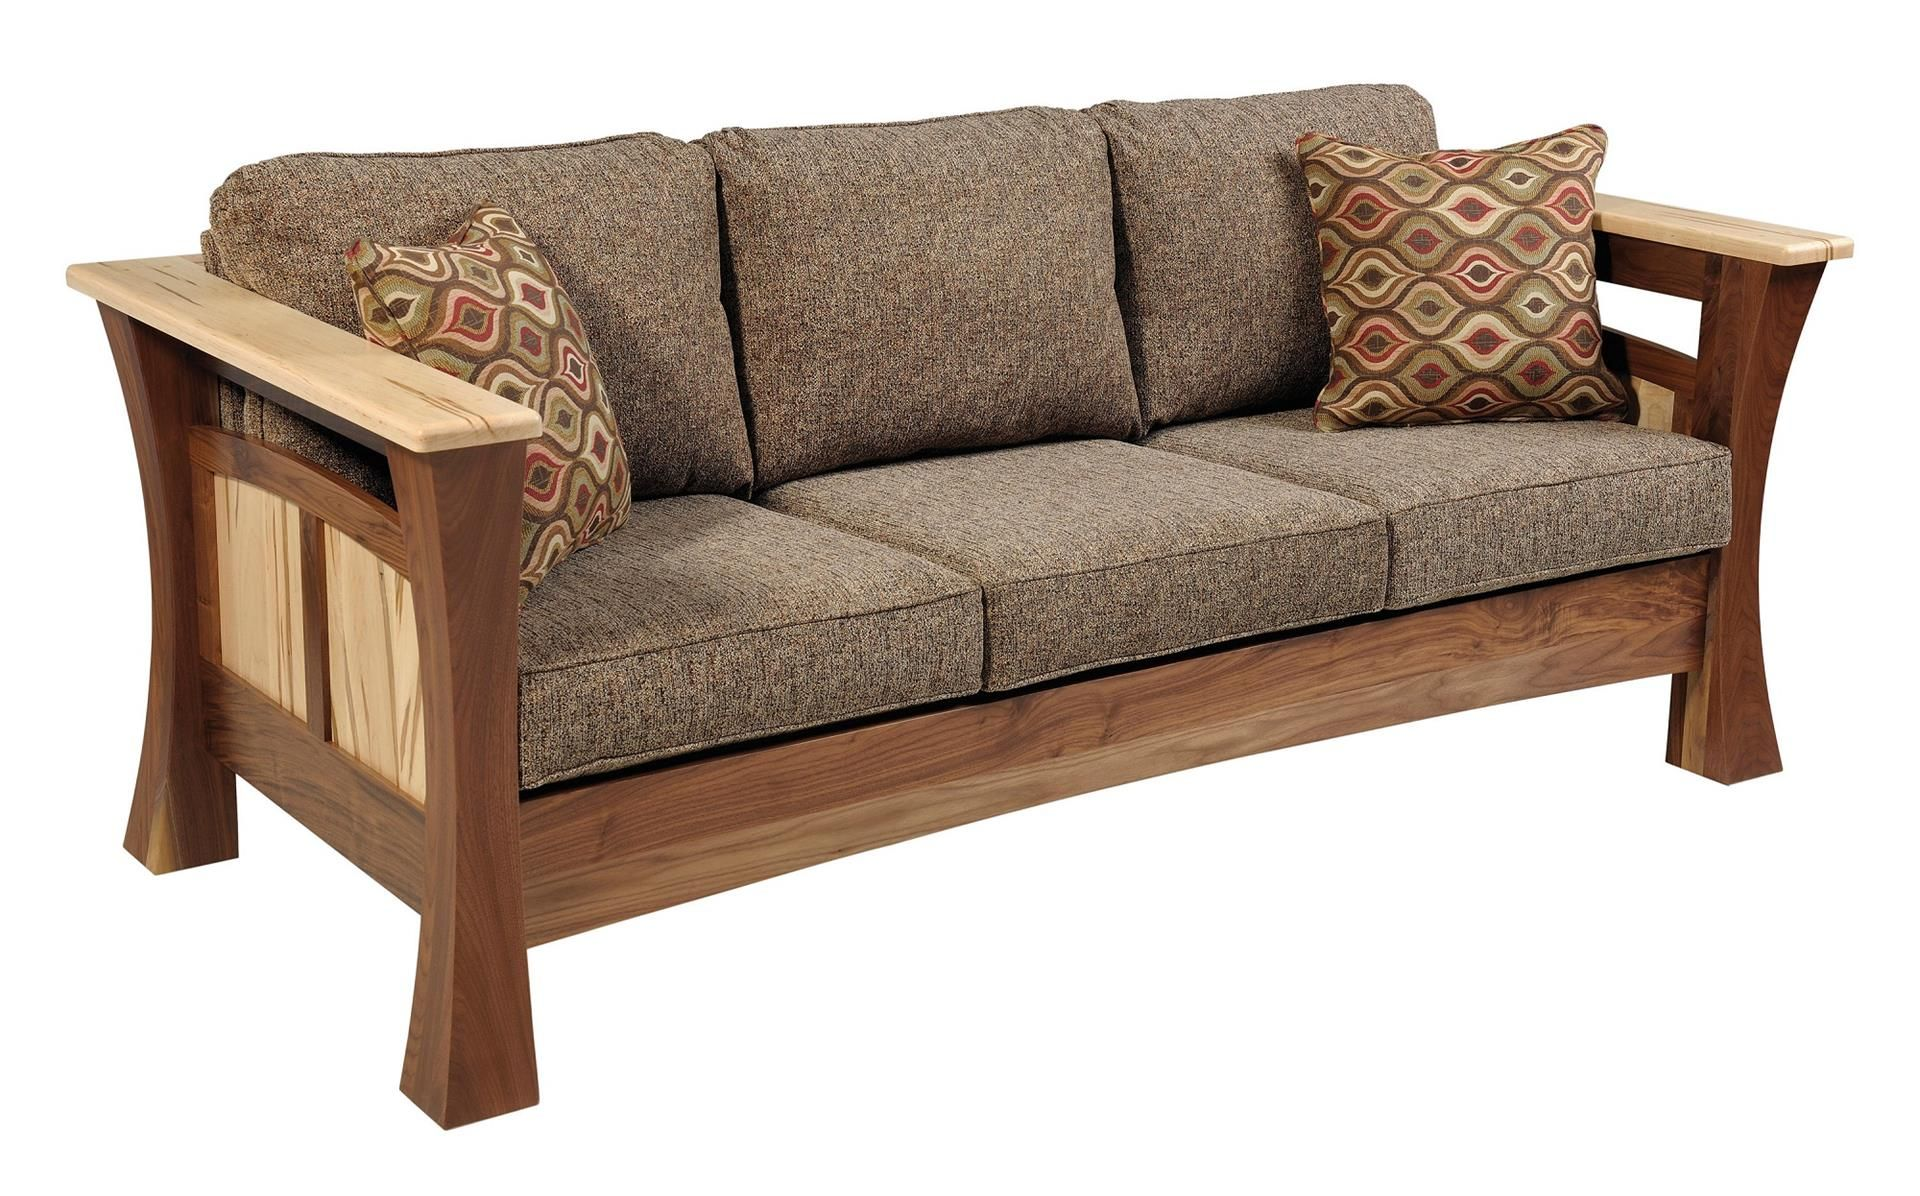 Amish Shaker Gateway Sofa Wooden Sofa Designs Furniture Wooden Sofa